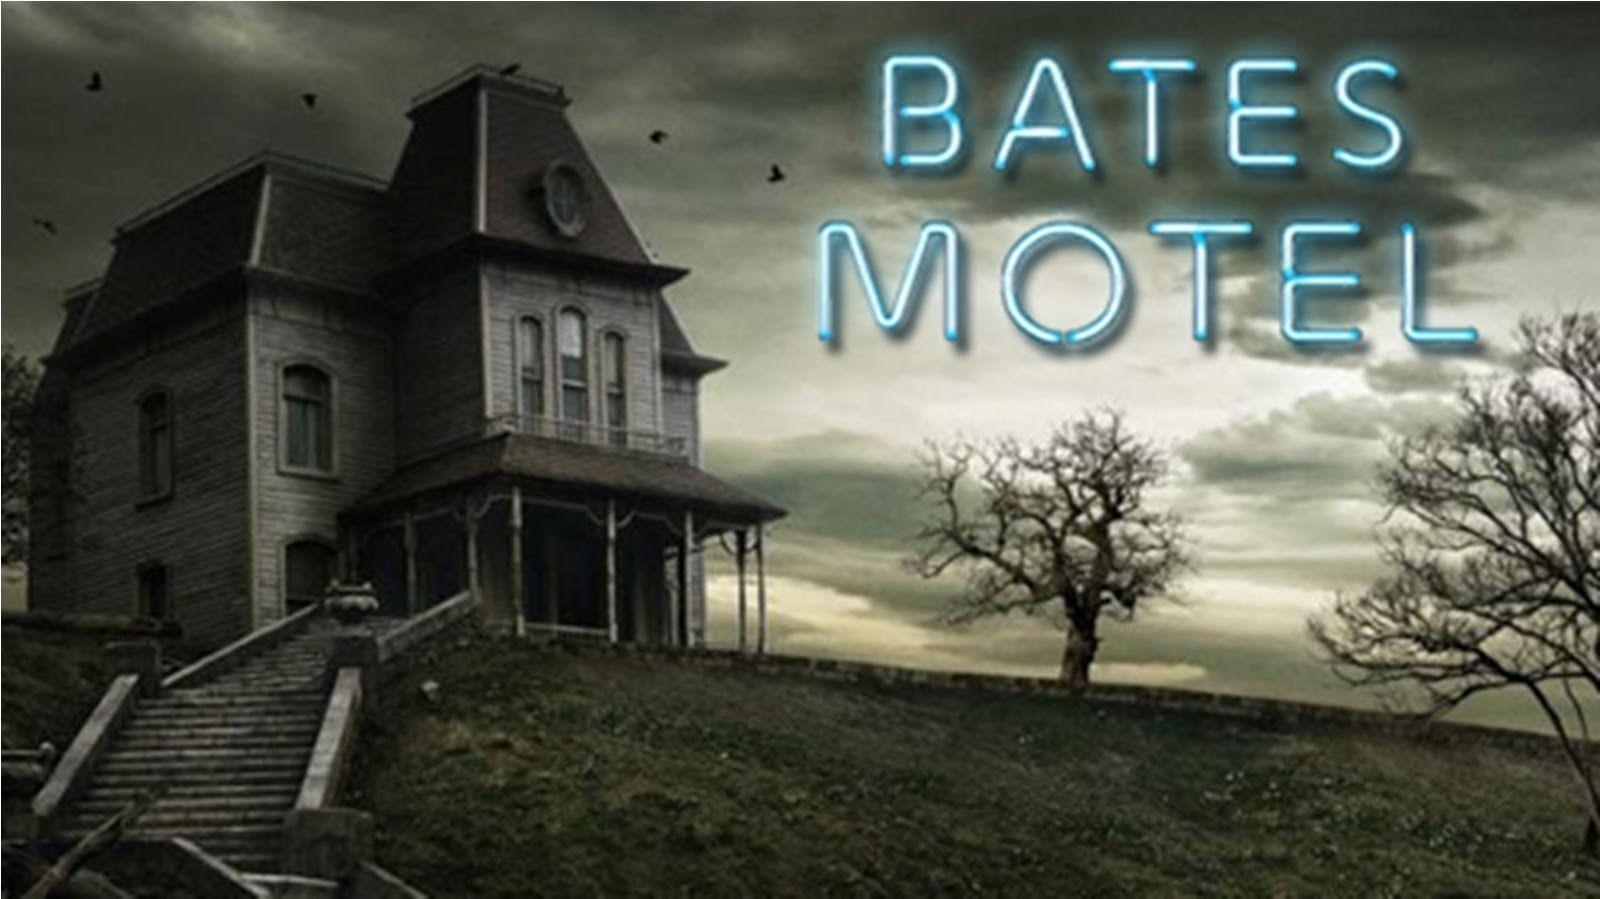 Bates Motel Season 2 Episode 1 Gone But Not Forgotten Review